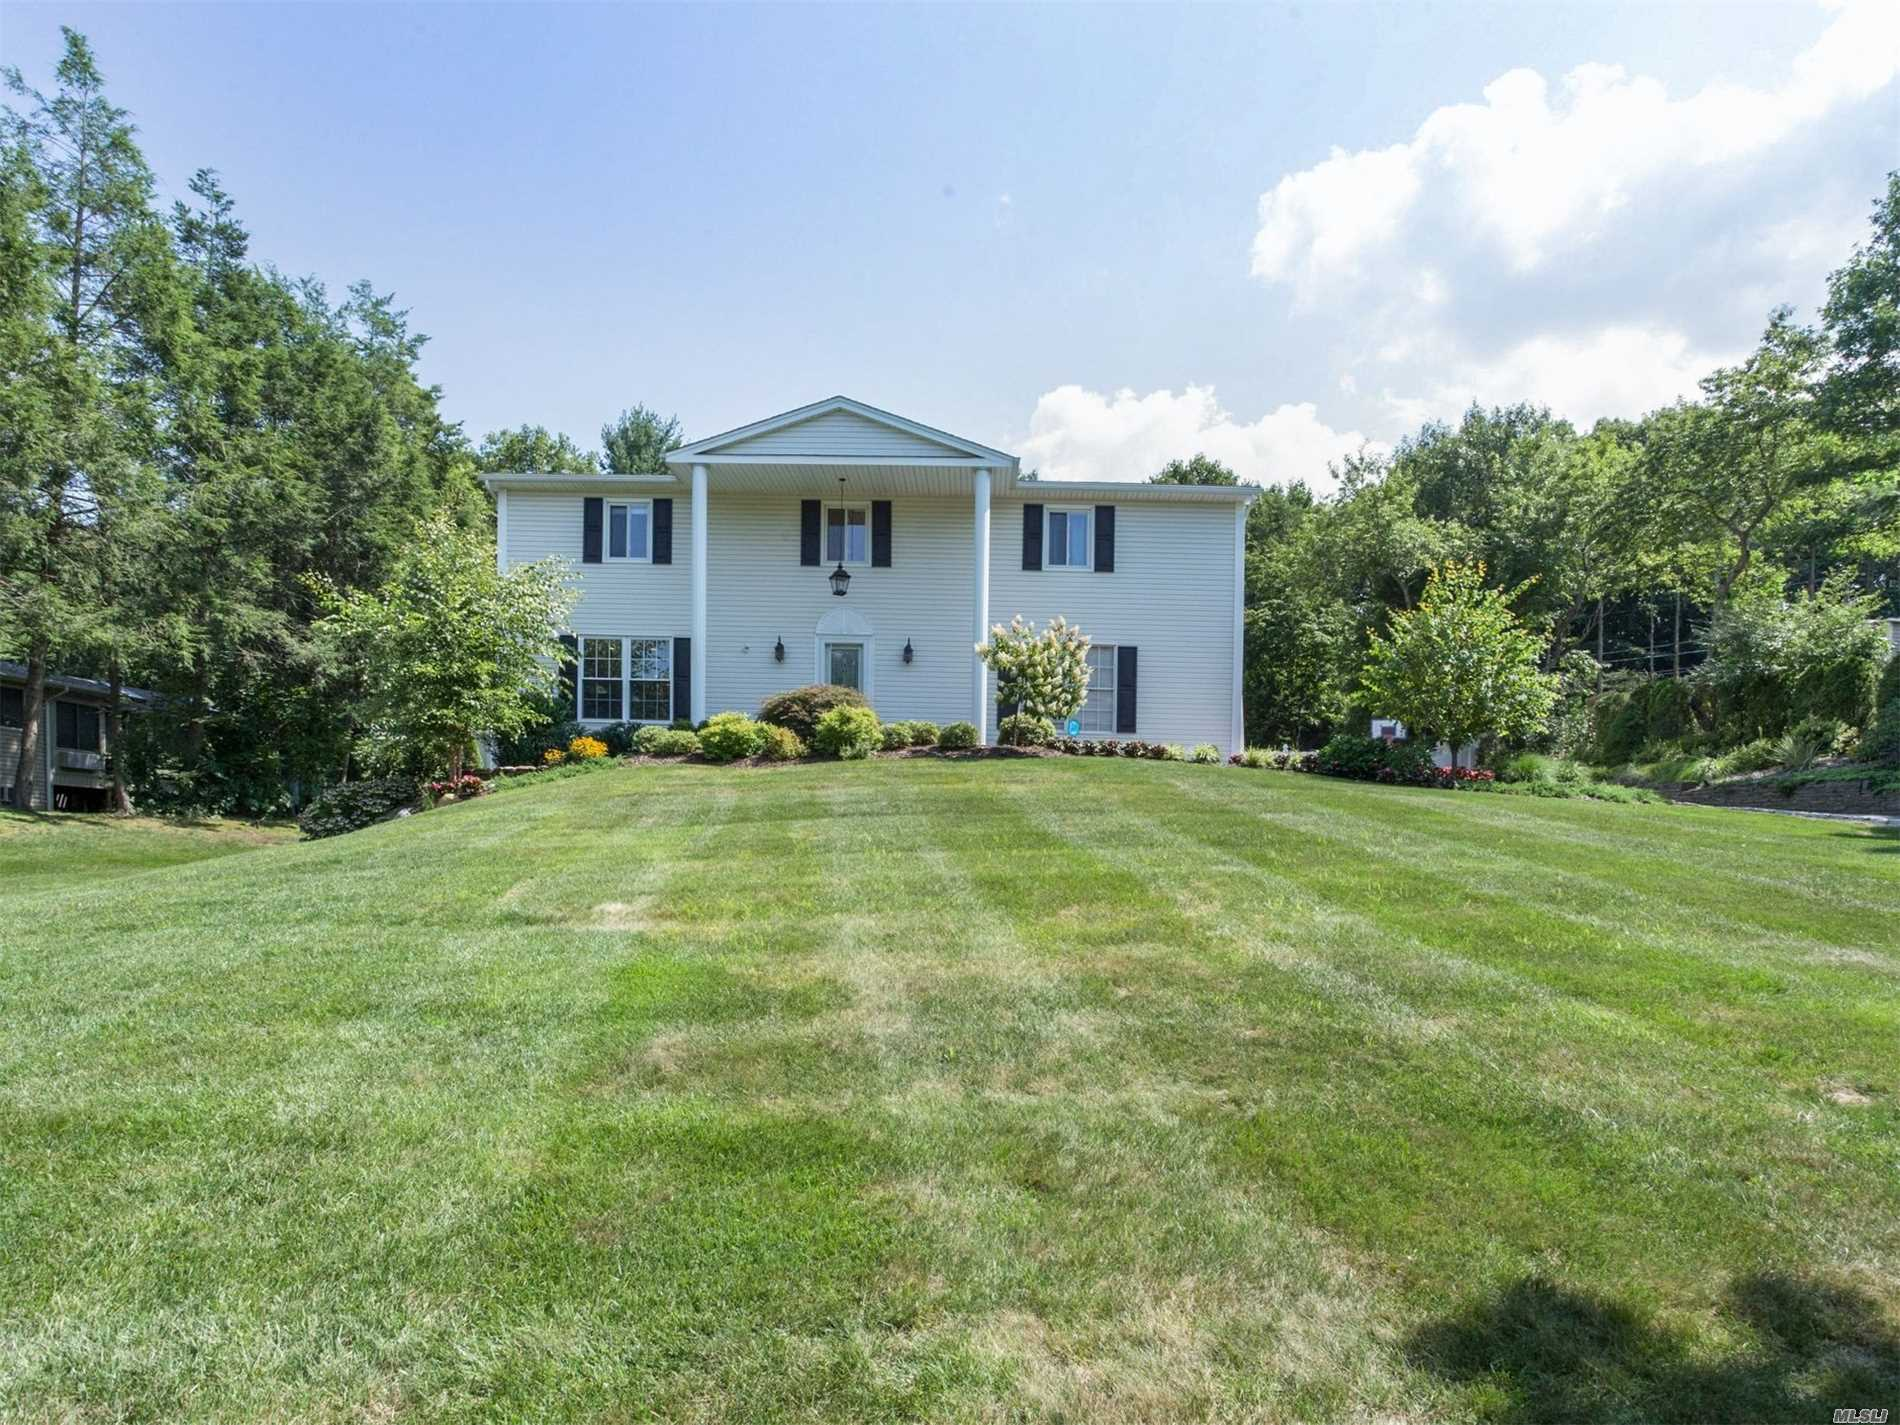 Exquisite Updated Colonial Situated on Top Of .58 Acres. Boosting 5 beds, 3.5 Baths & Hardwood Floors This Home Has It All. Gourmet Eik w/all The Extras, Gas Fireplace w/Built-Ins, Master Suite w/Wic & Radiant Heat Custom Bath. Full Basement w/OSE, In-Law Suite or Office w/Proper Permits. New Updates Include Heating, Electric, & Plumbing. The Yard Is Professionally Landscaped, Fenced, & Pool w/New Liner, Heater, Pump & Electric. No Expenses Were Spared!